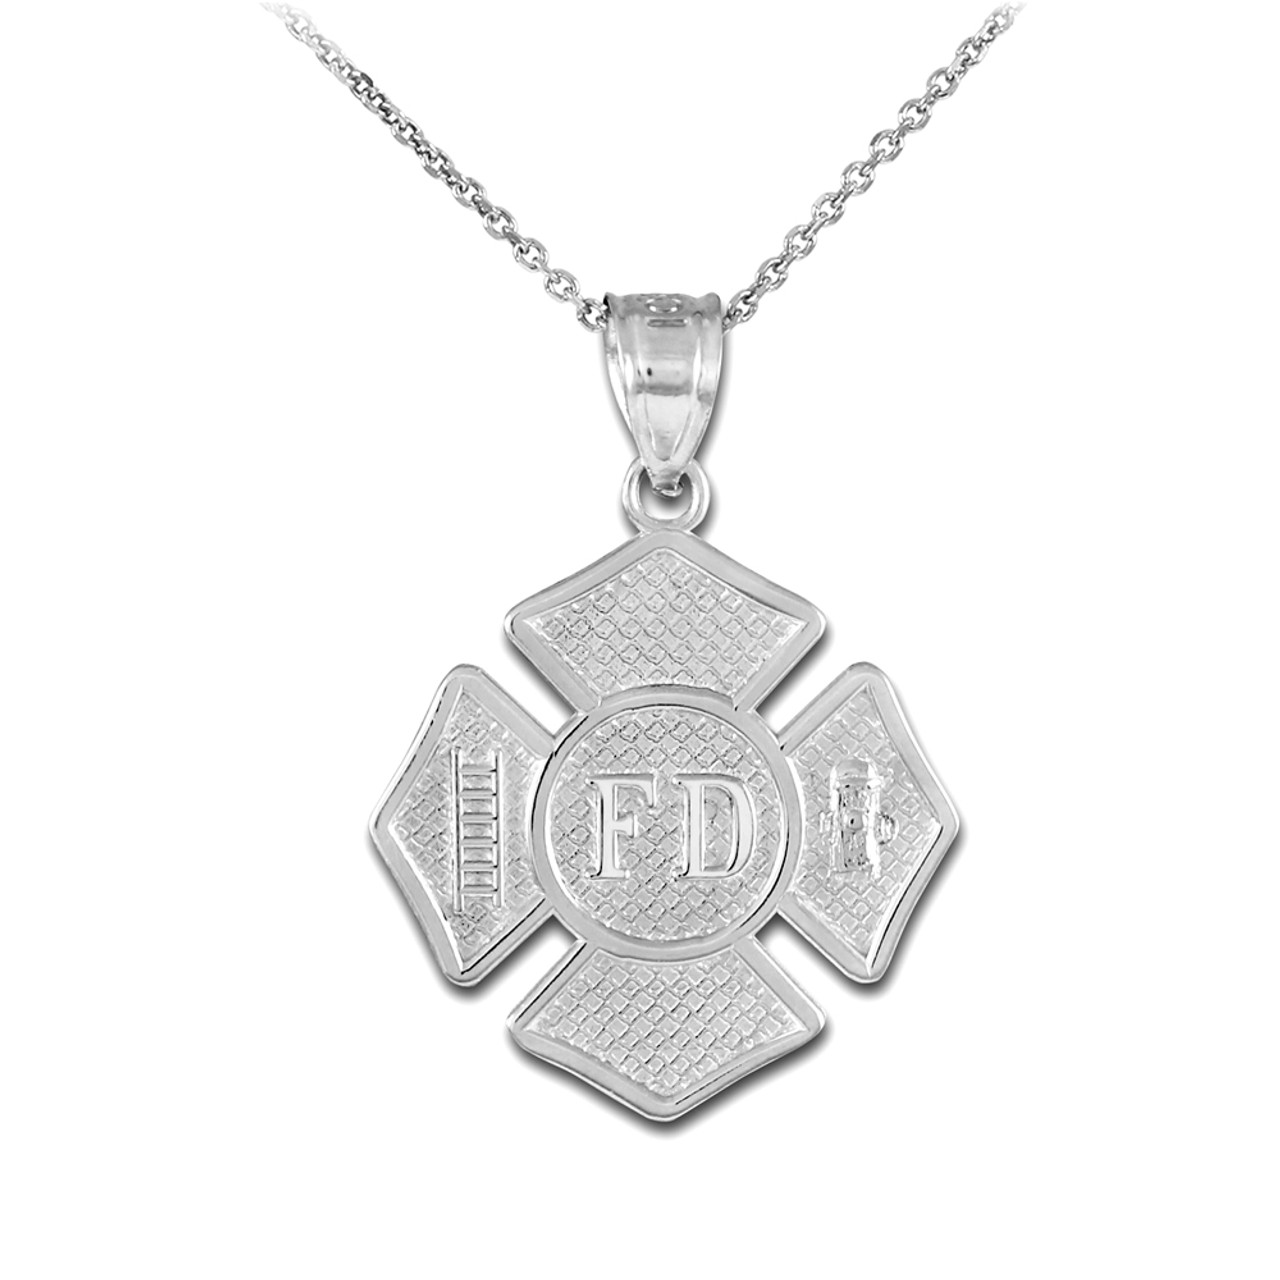 mizpah firefighter traumspuren necklace il fullxfull galery cross pendant maltese